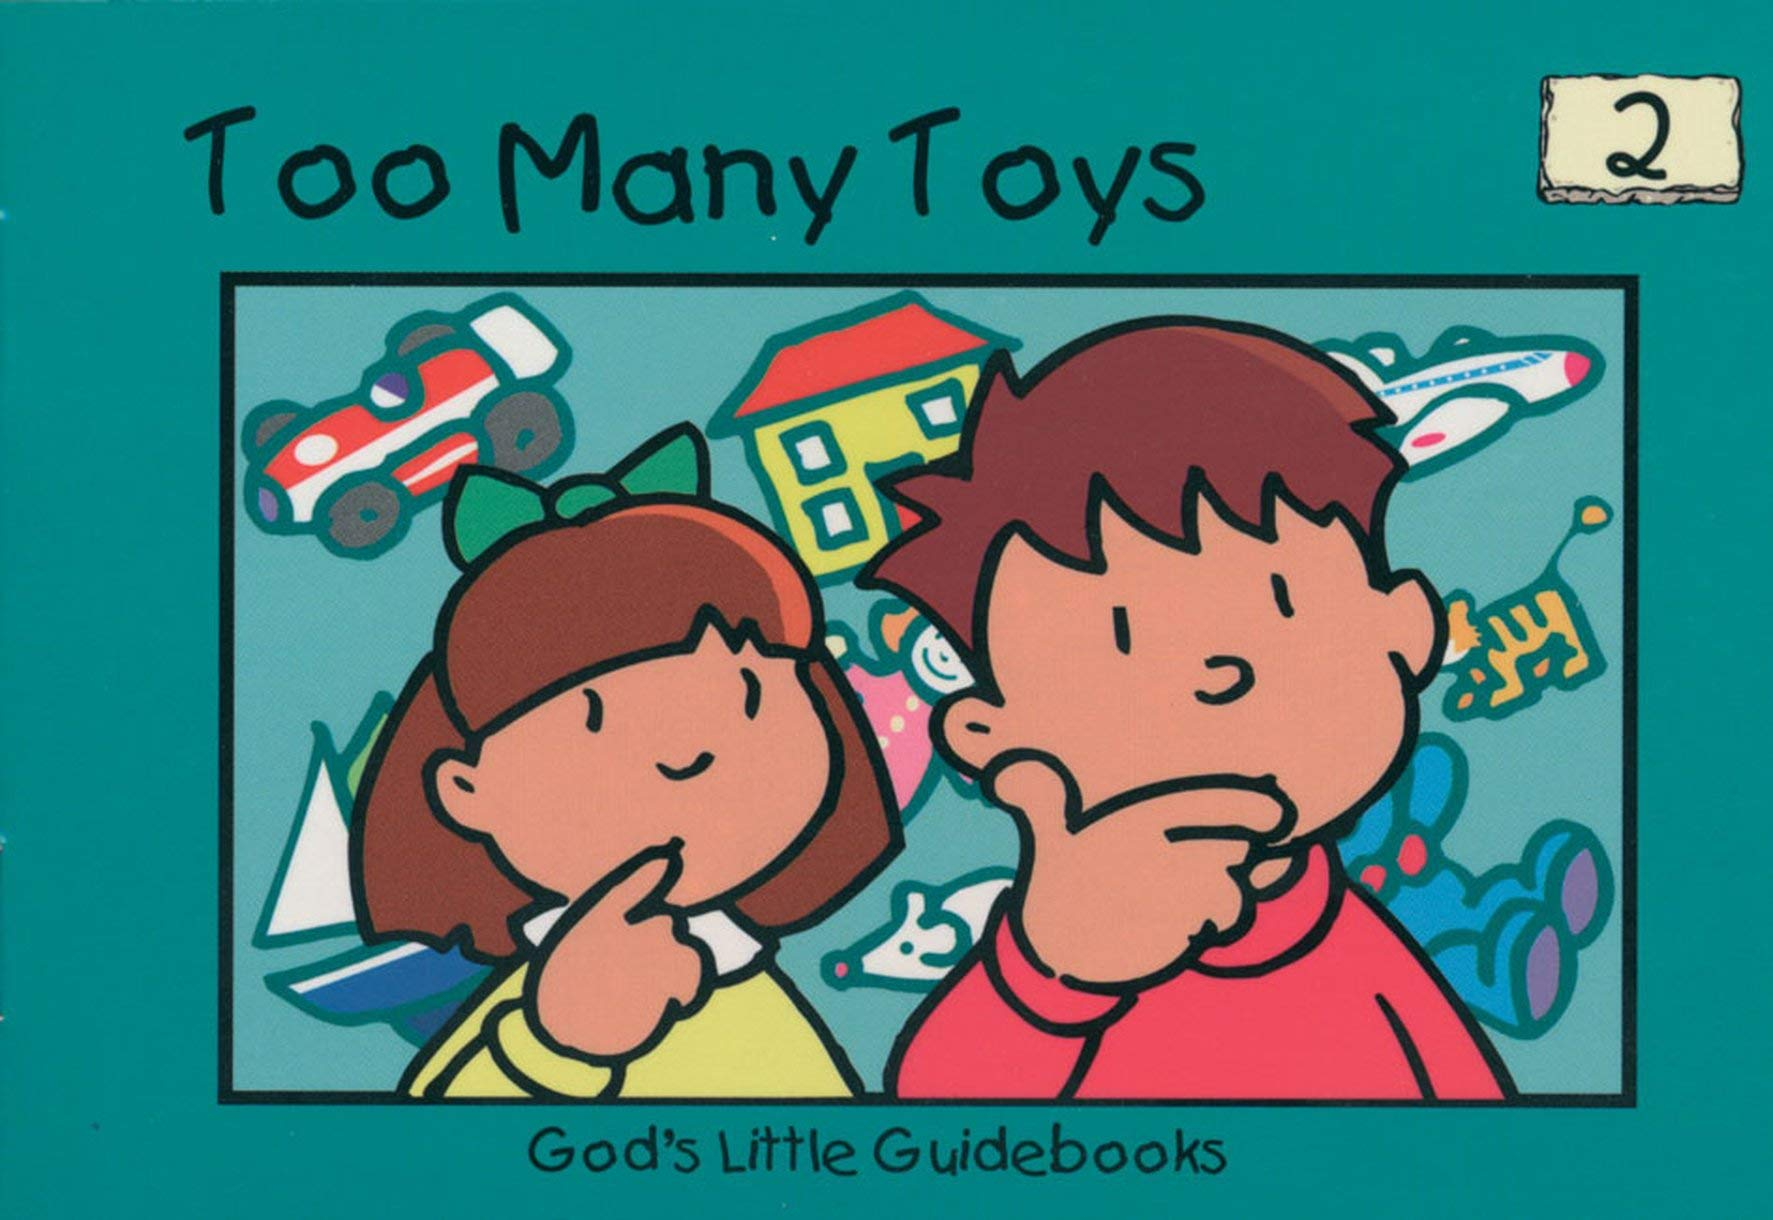 Too Many Toys (God's Little Guidebooks)